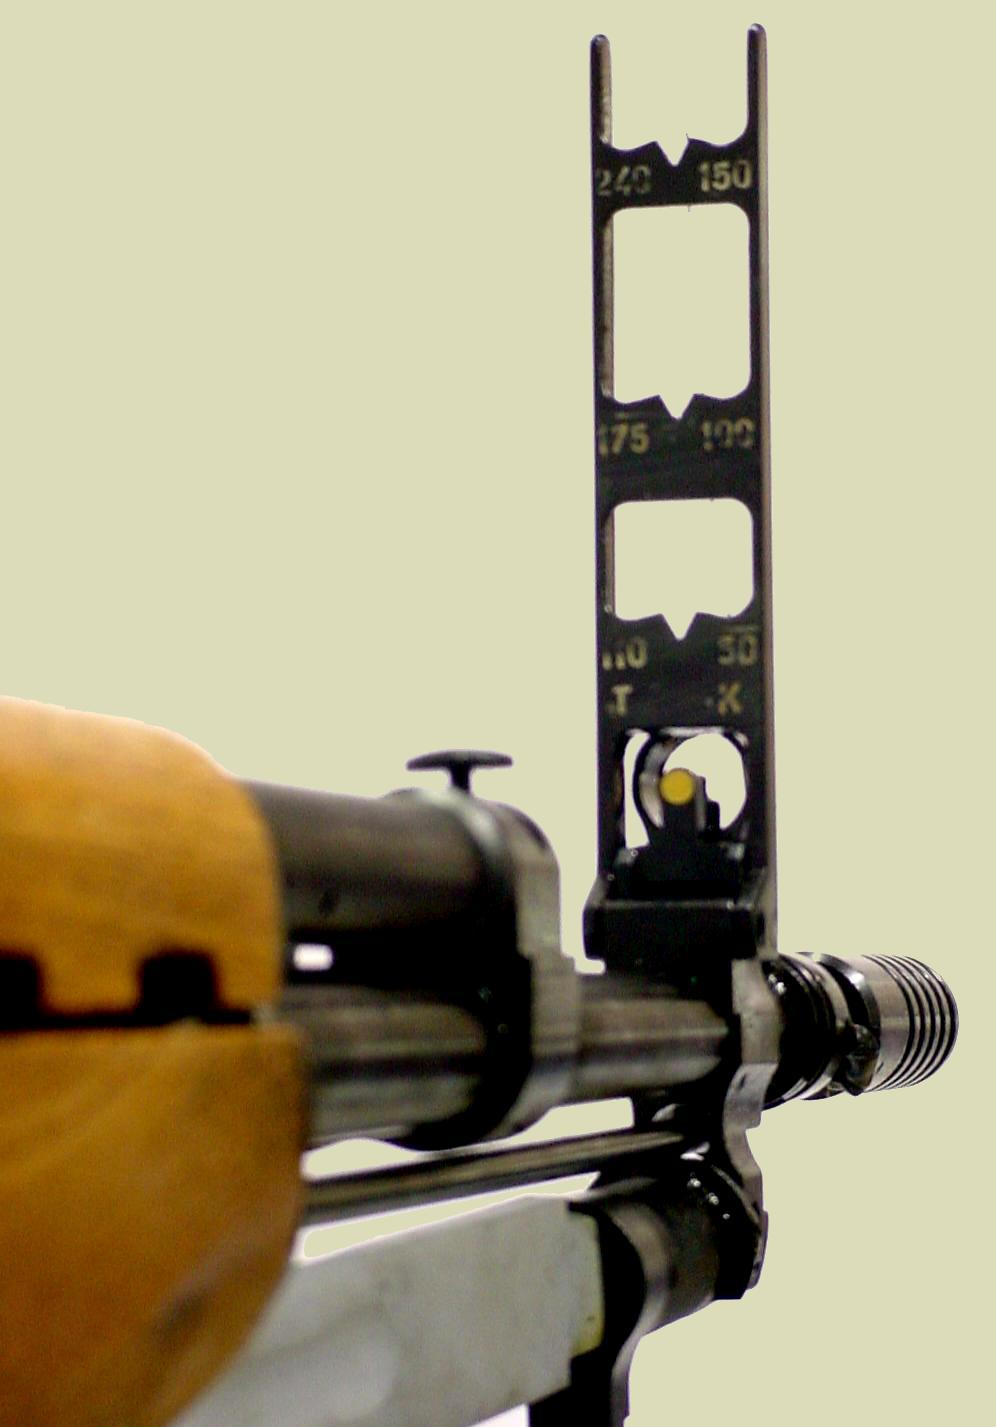 Photo of the SKS M59/66 rifle with its rifle grenade launcher. Looking down the sight.